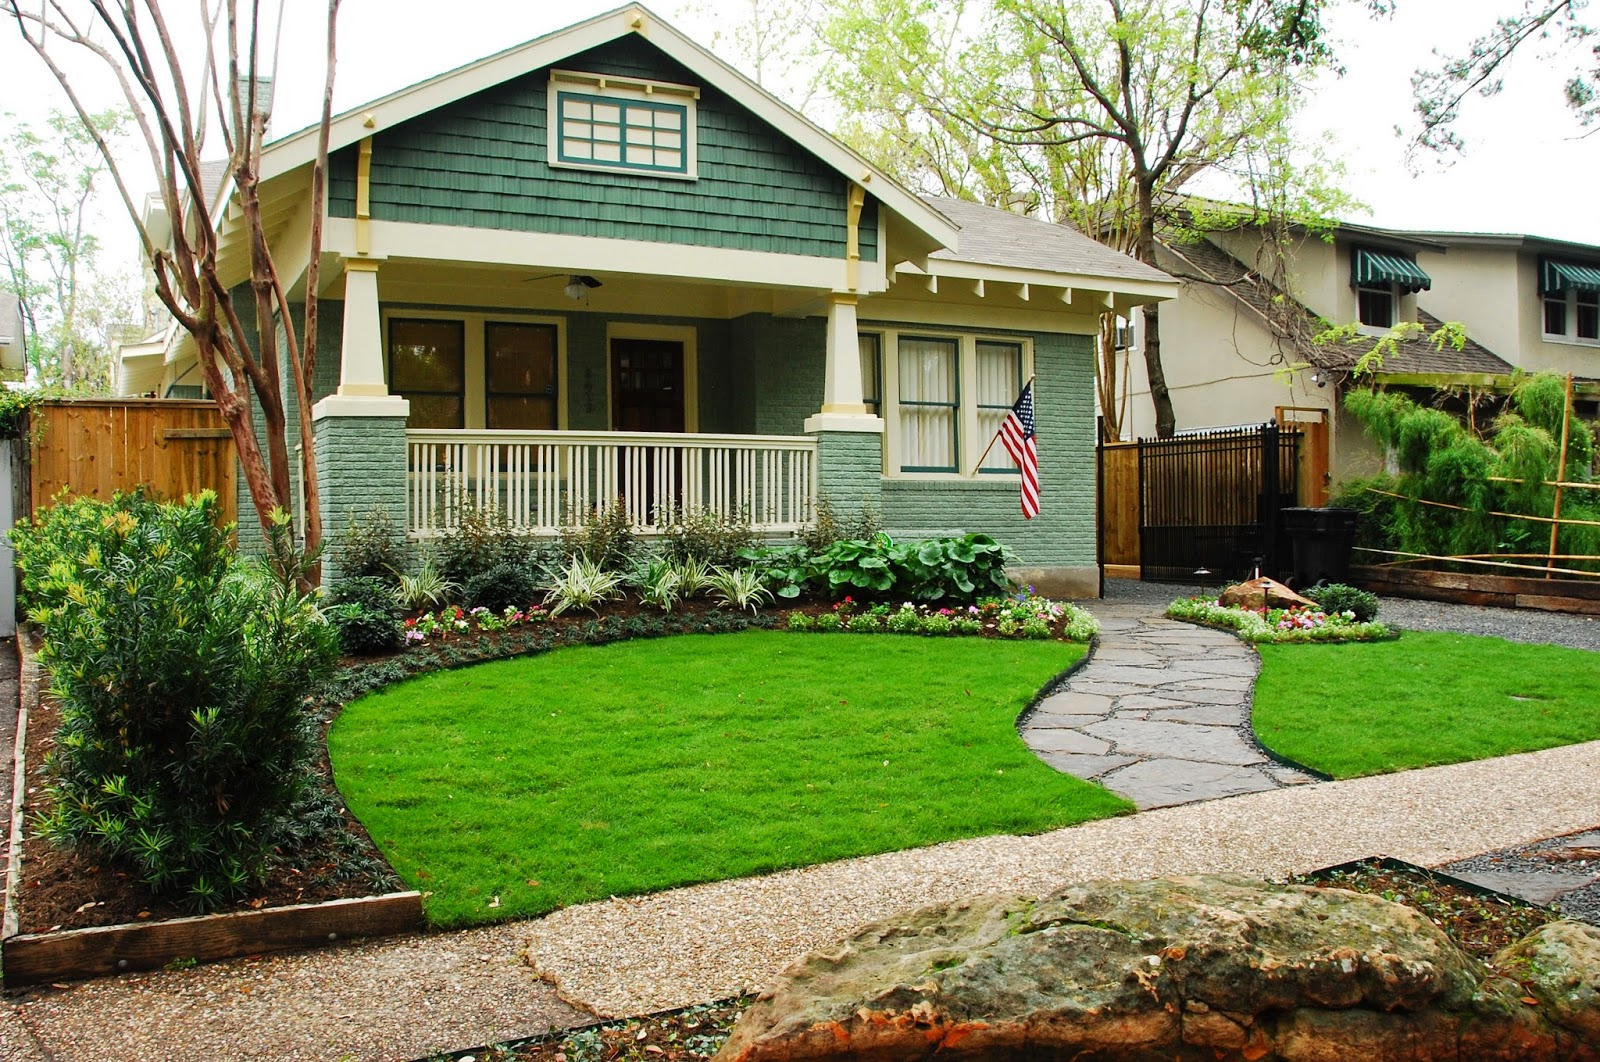 19 Best Photo Of Small Front Yard Garden Ideas - Tierra ...